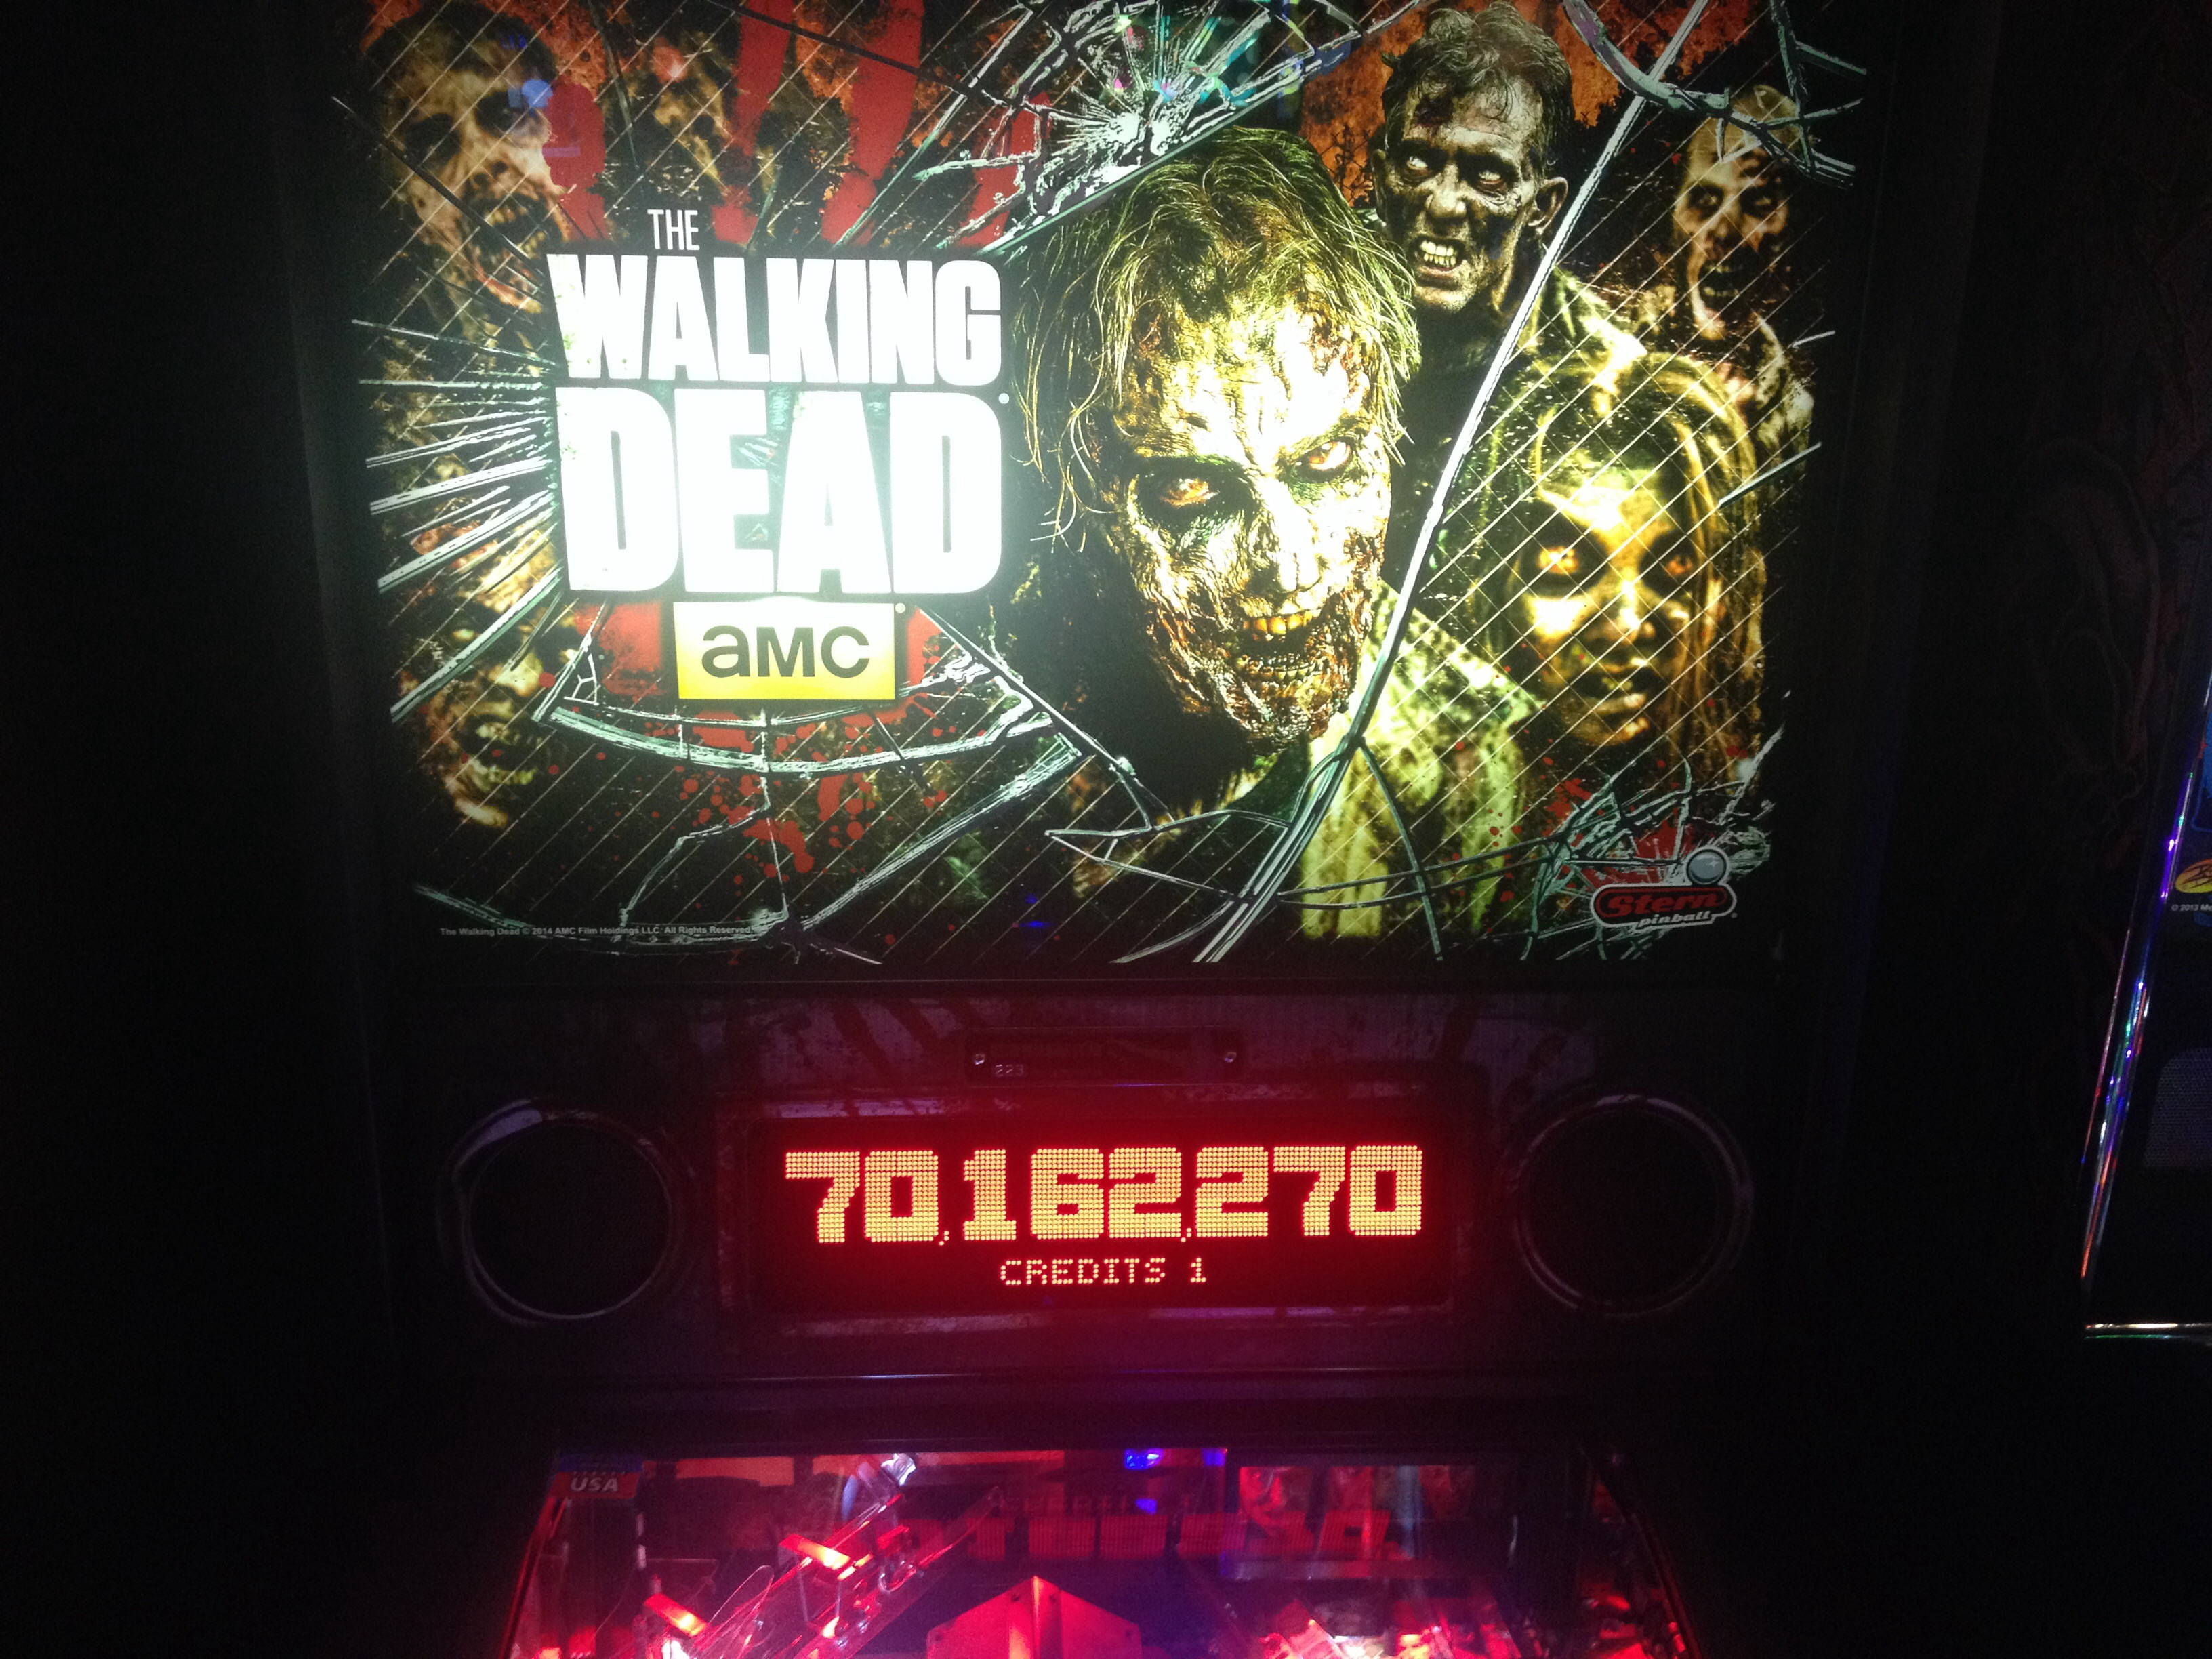 FosterAMF: The Walking Dead (Pinball: 3 Balls) 70,162,270 points on 2015-04-12 16:19:40